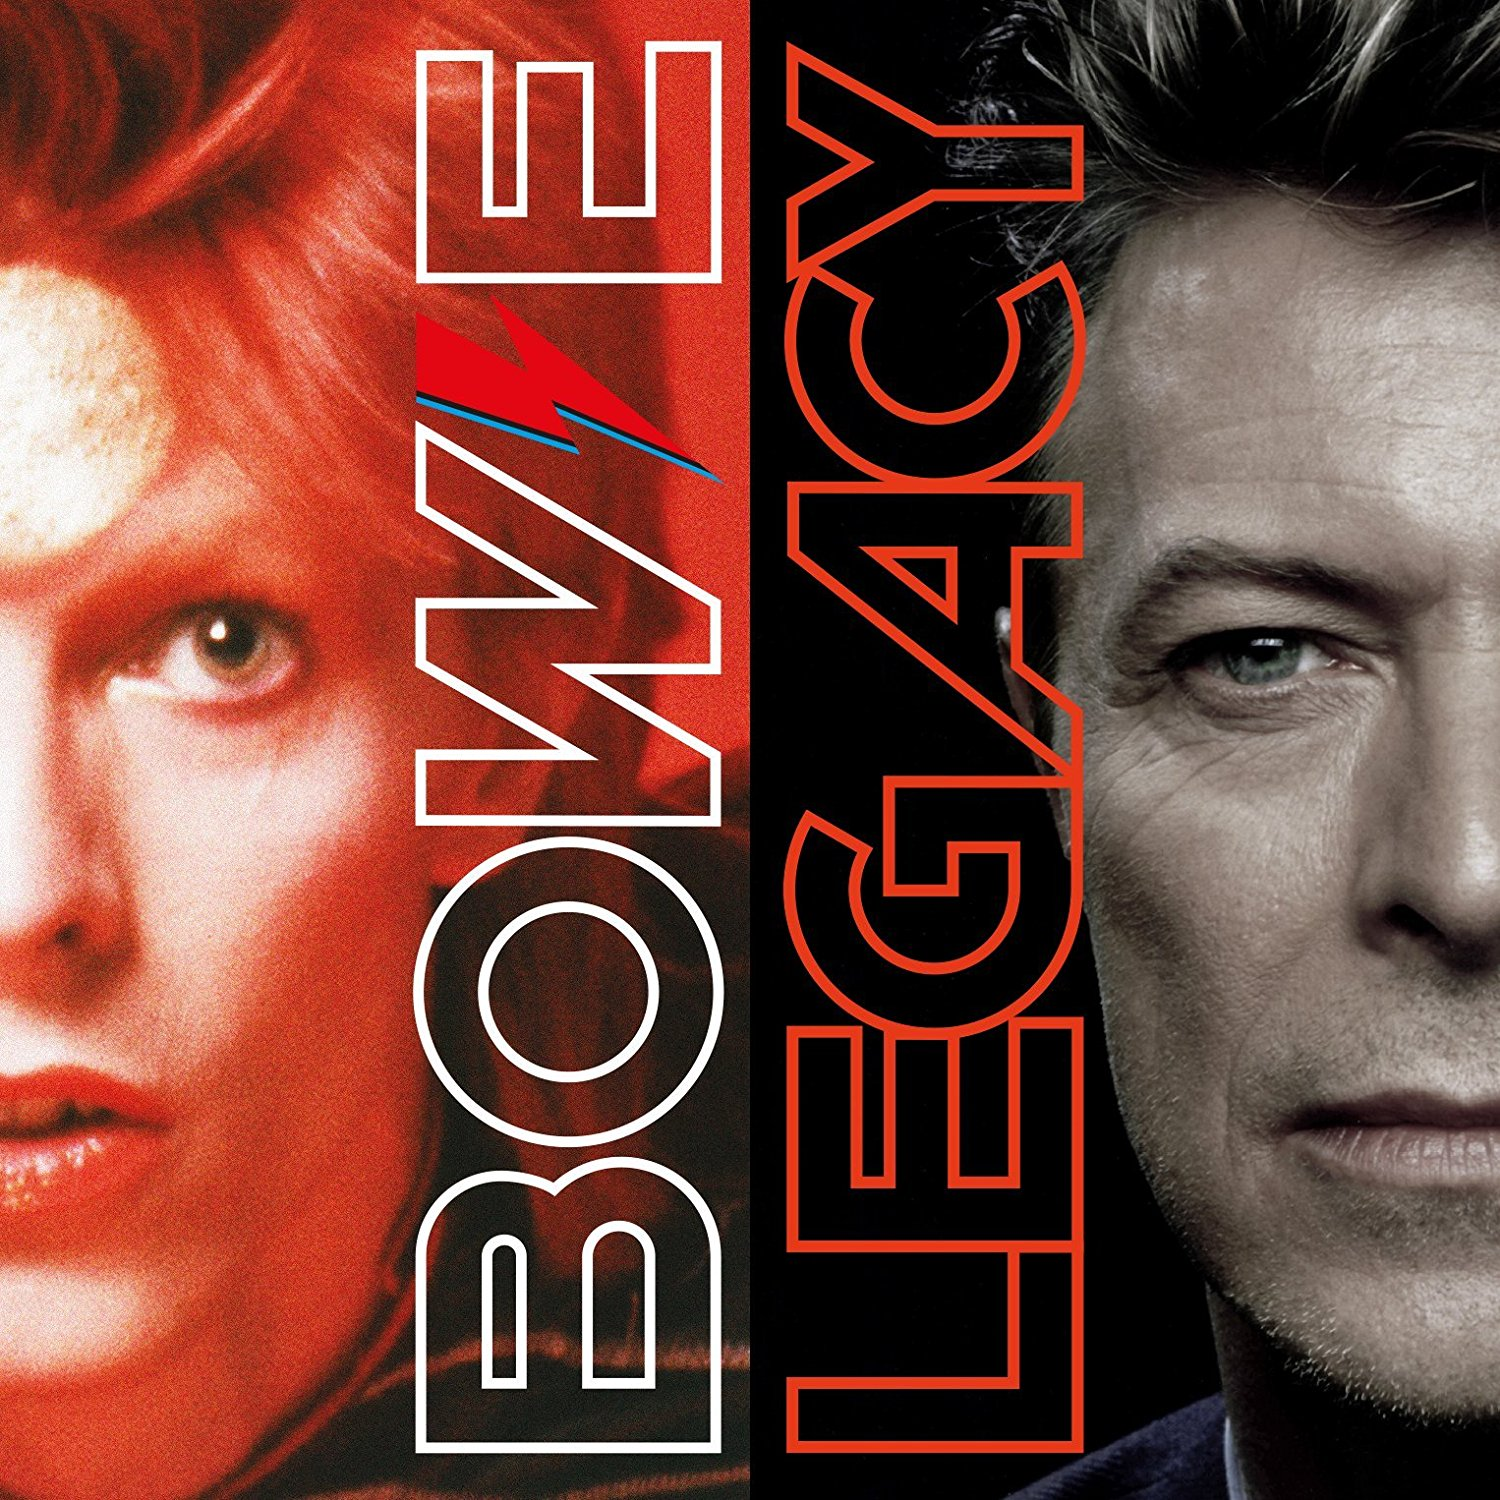 singles in bowie David bowie - 12 singles - discography uk : 33 records : latest updates : gallery : uk 33 usa 24 germany 9 canada 3 netherlands 3 europe 2 international 2 australia 1 france 1 japan 1 norway 1 south africa 1 all.